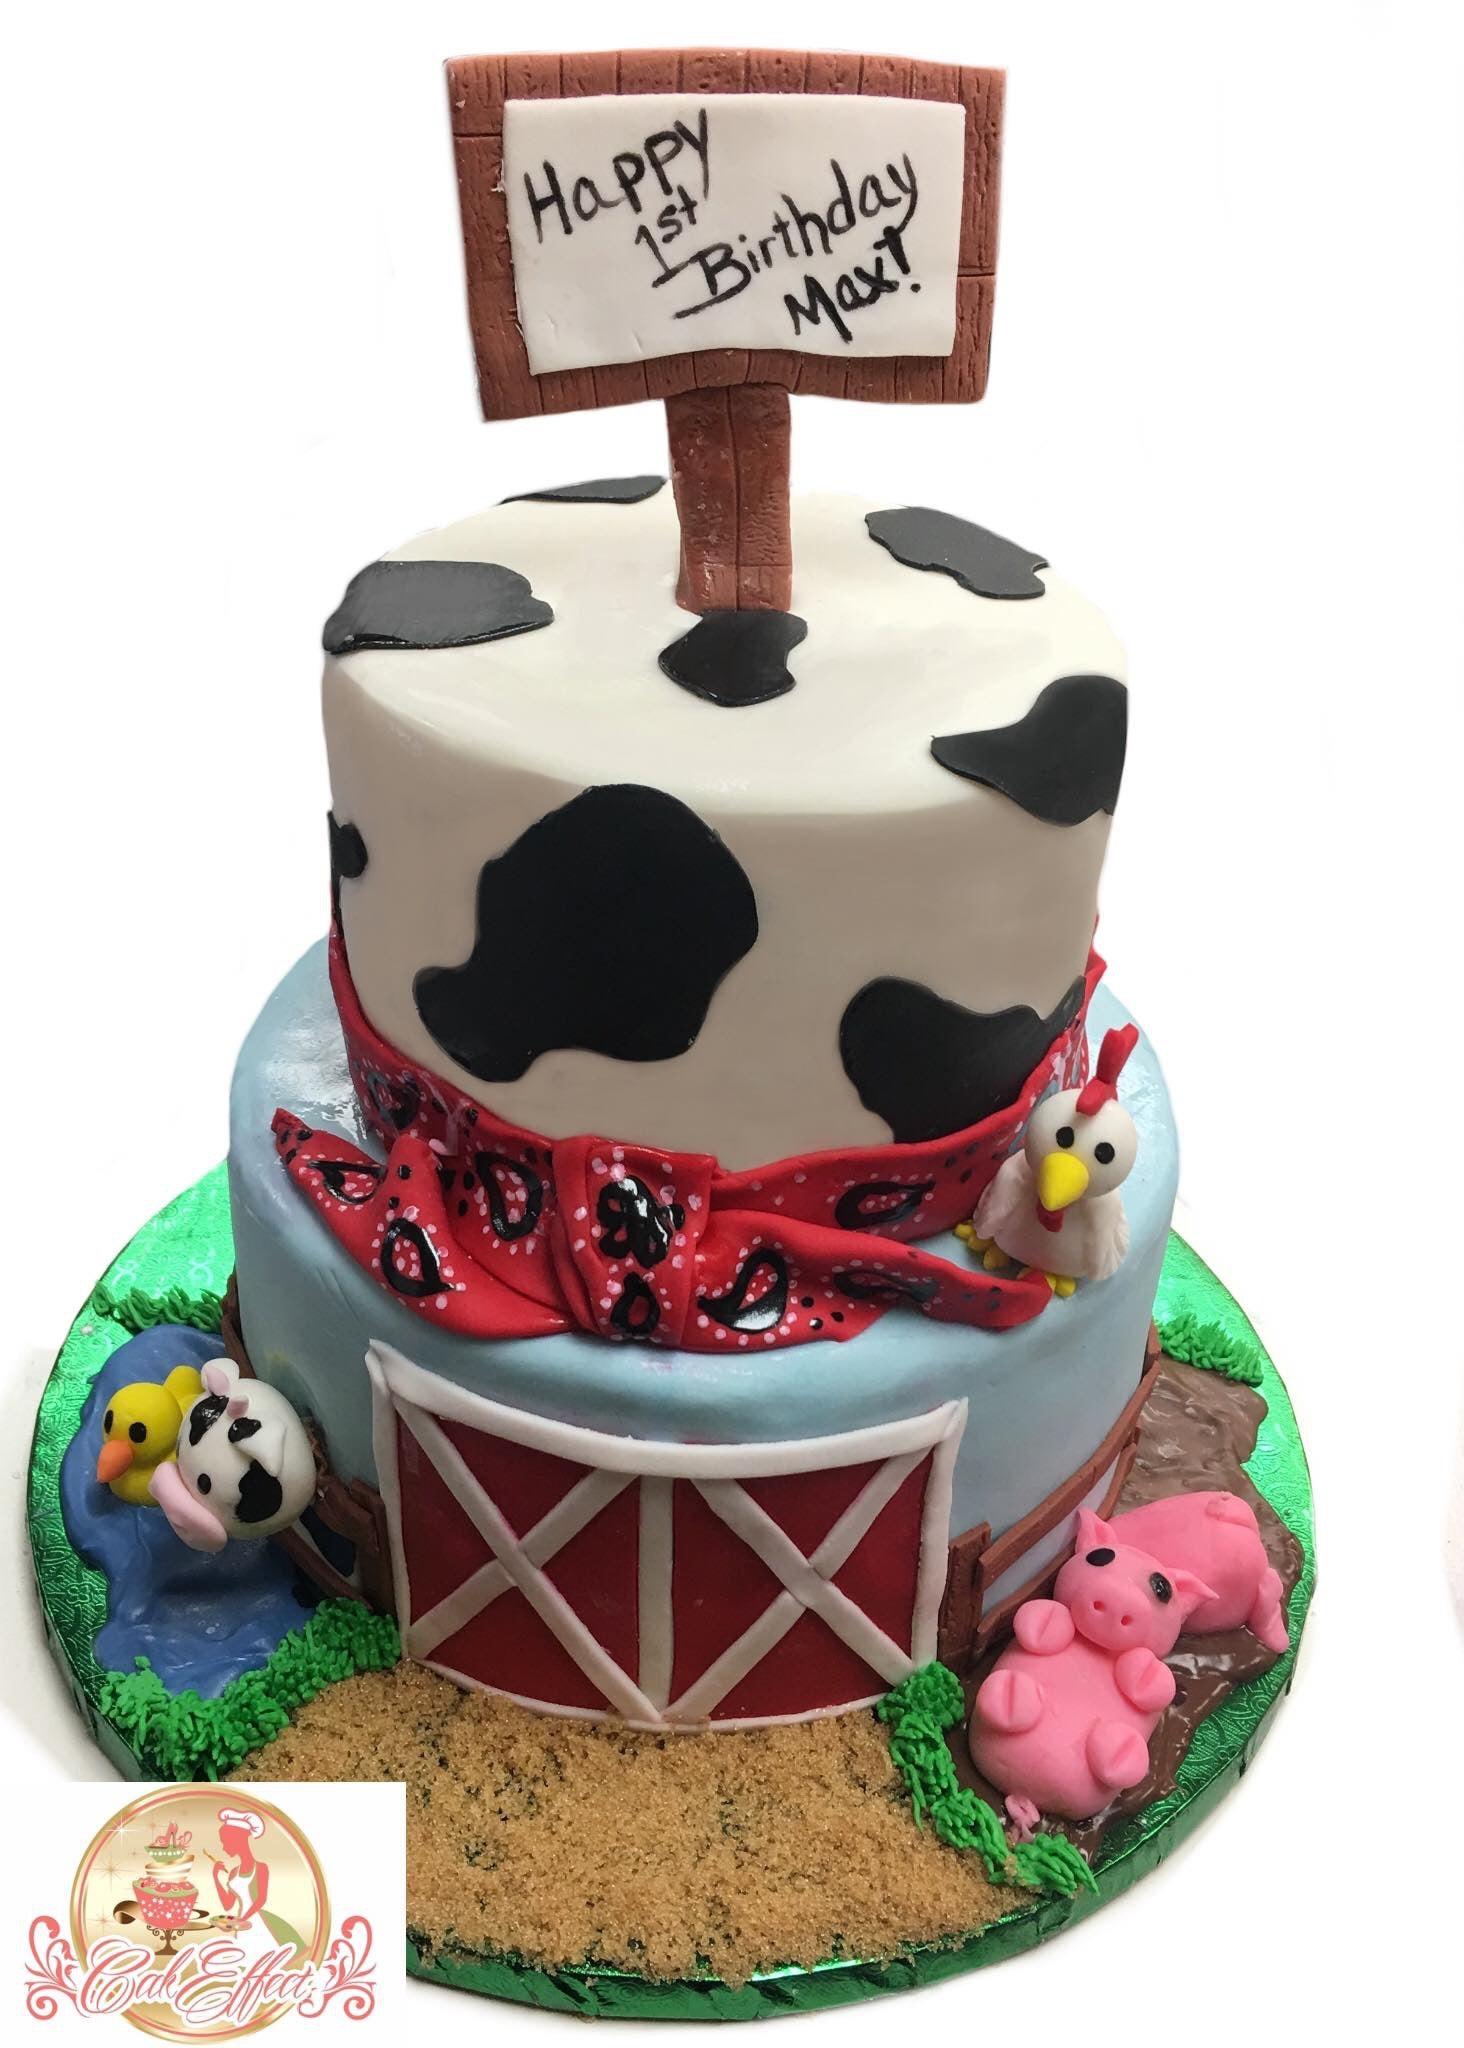 Birthday Cake Old MacDonald's Cow Farm - CakEffect Bakery